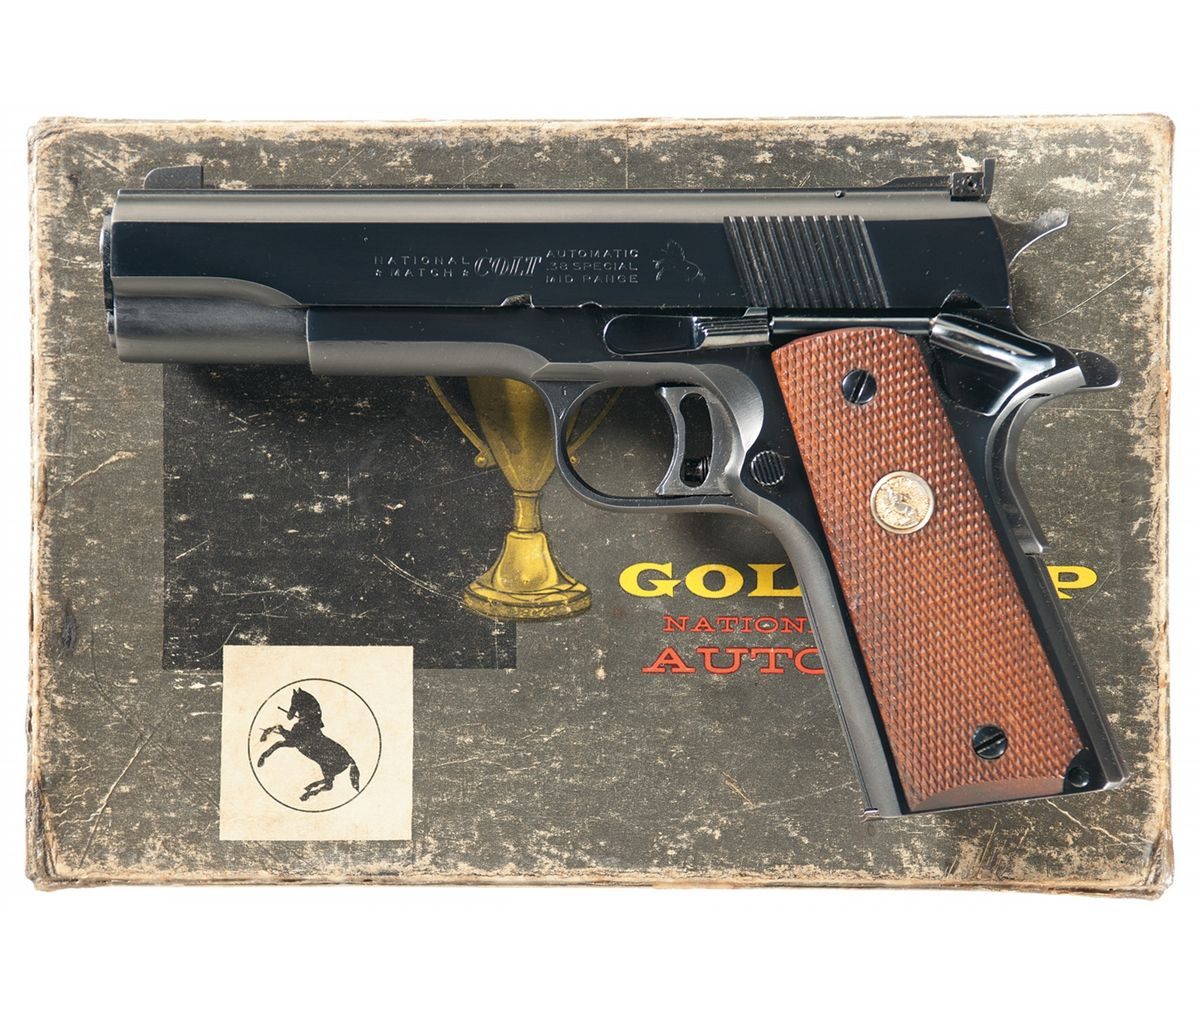 Colt M1911 Gold Cup National Match .38 Special Mid-Range-2-icollector.com